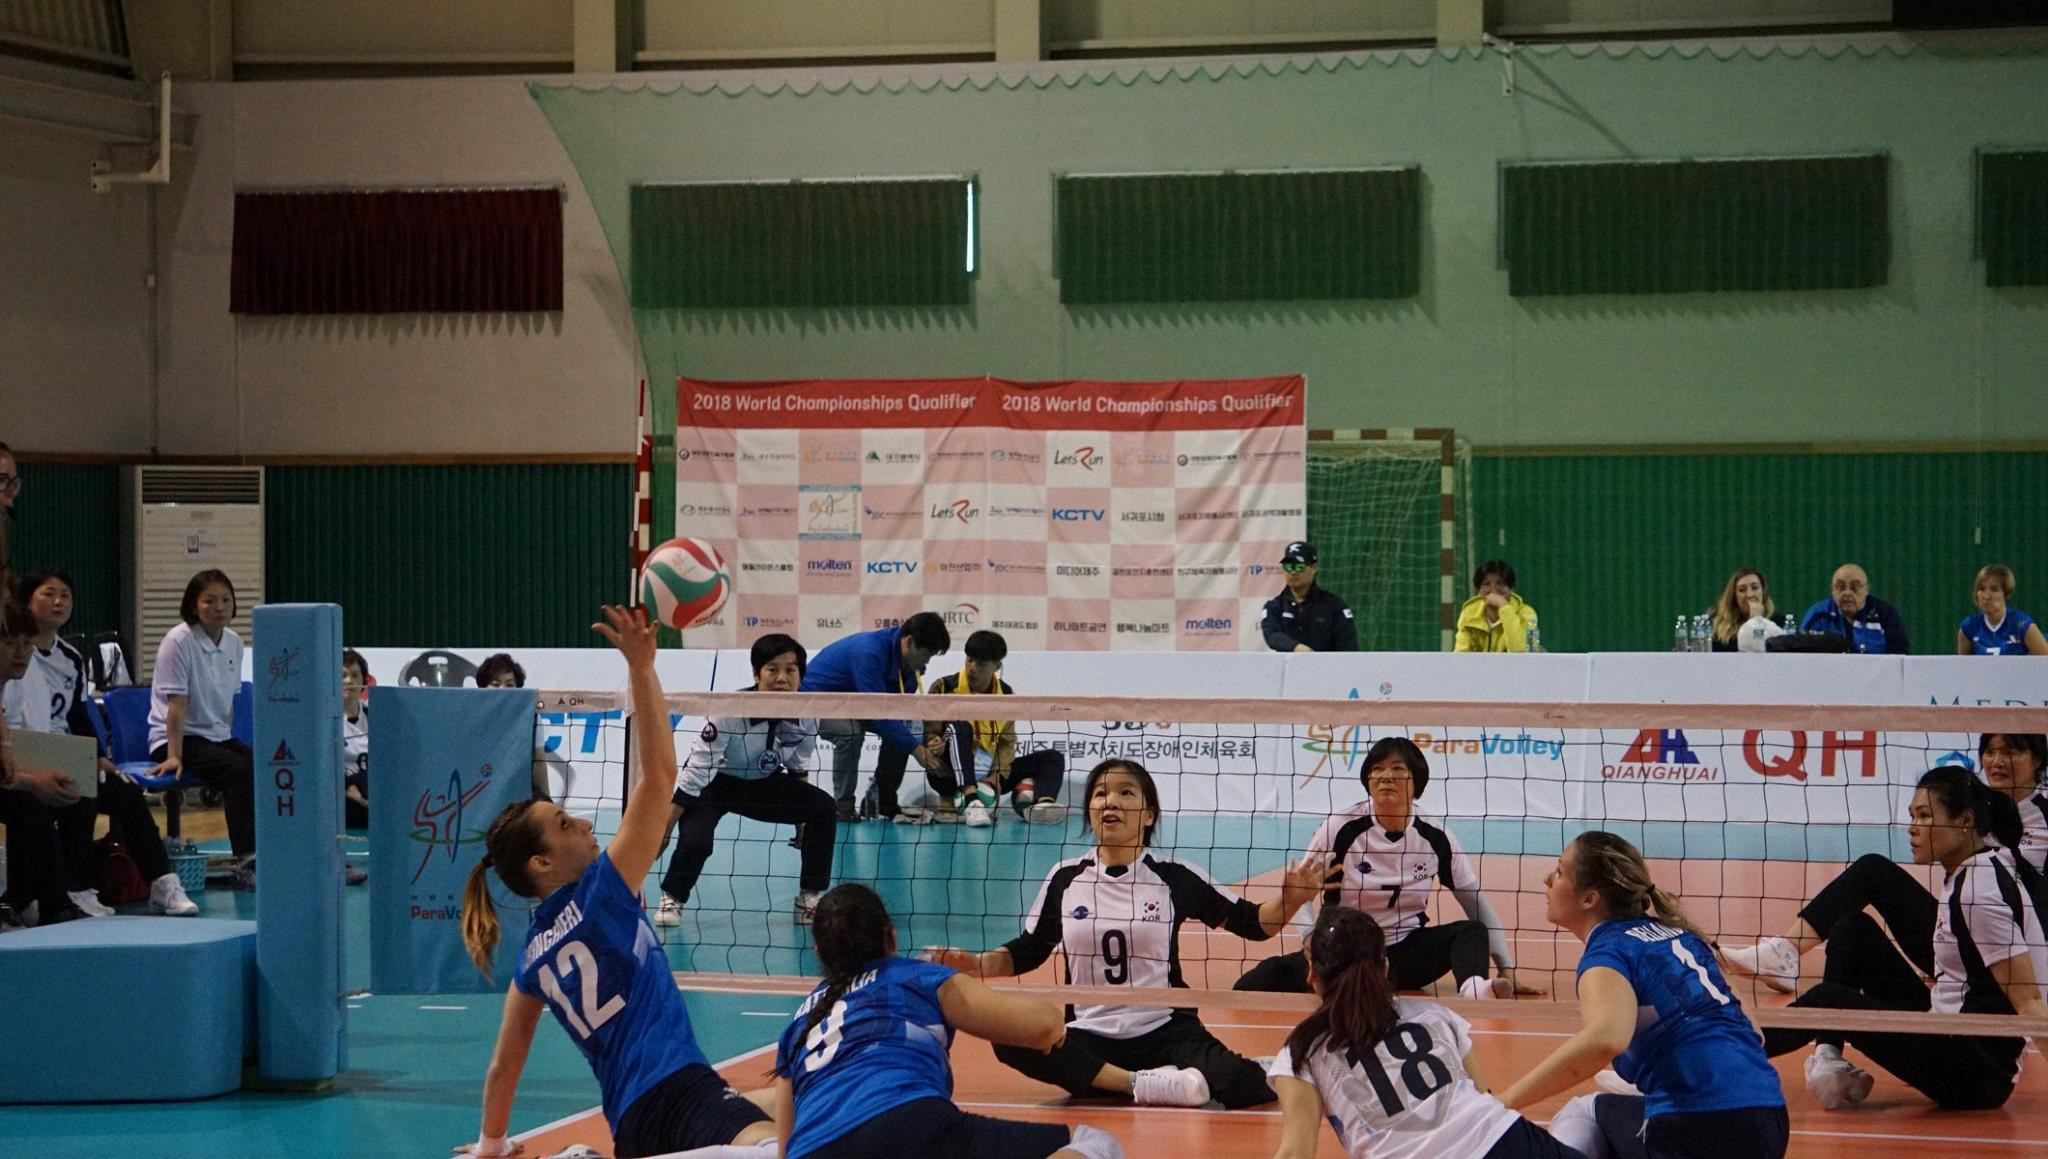 Italy's women qualify for 2018 Sitting Volleyball World Championships on disappointing day for South Korea